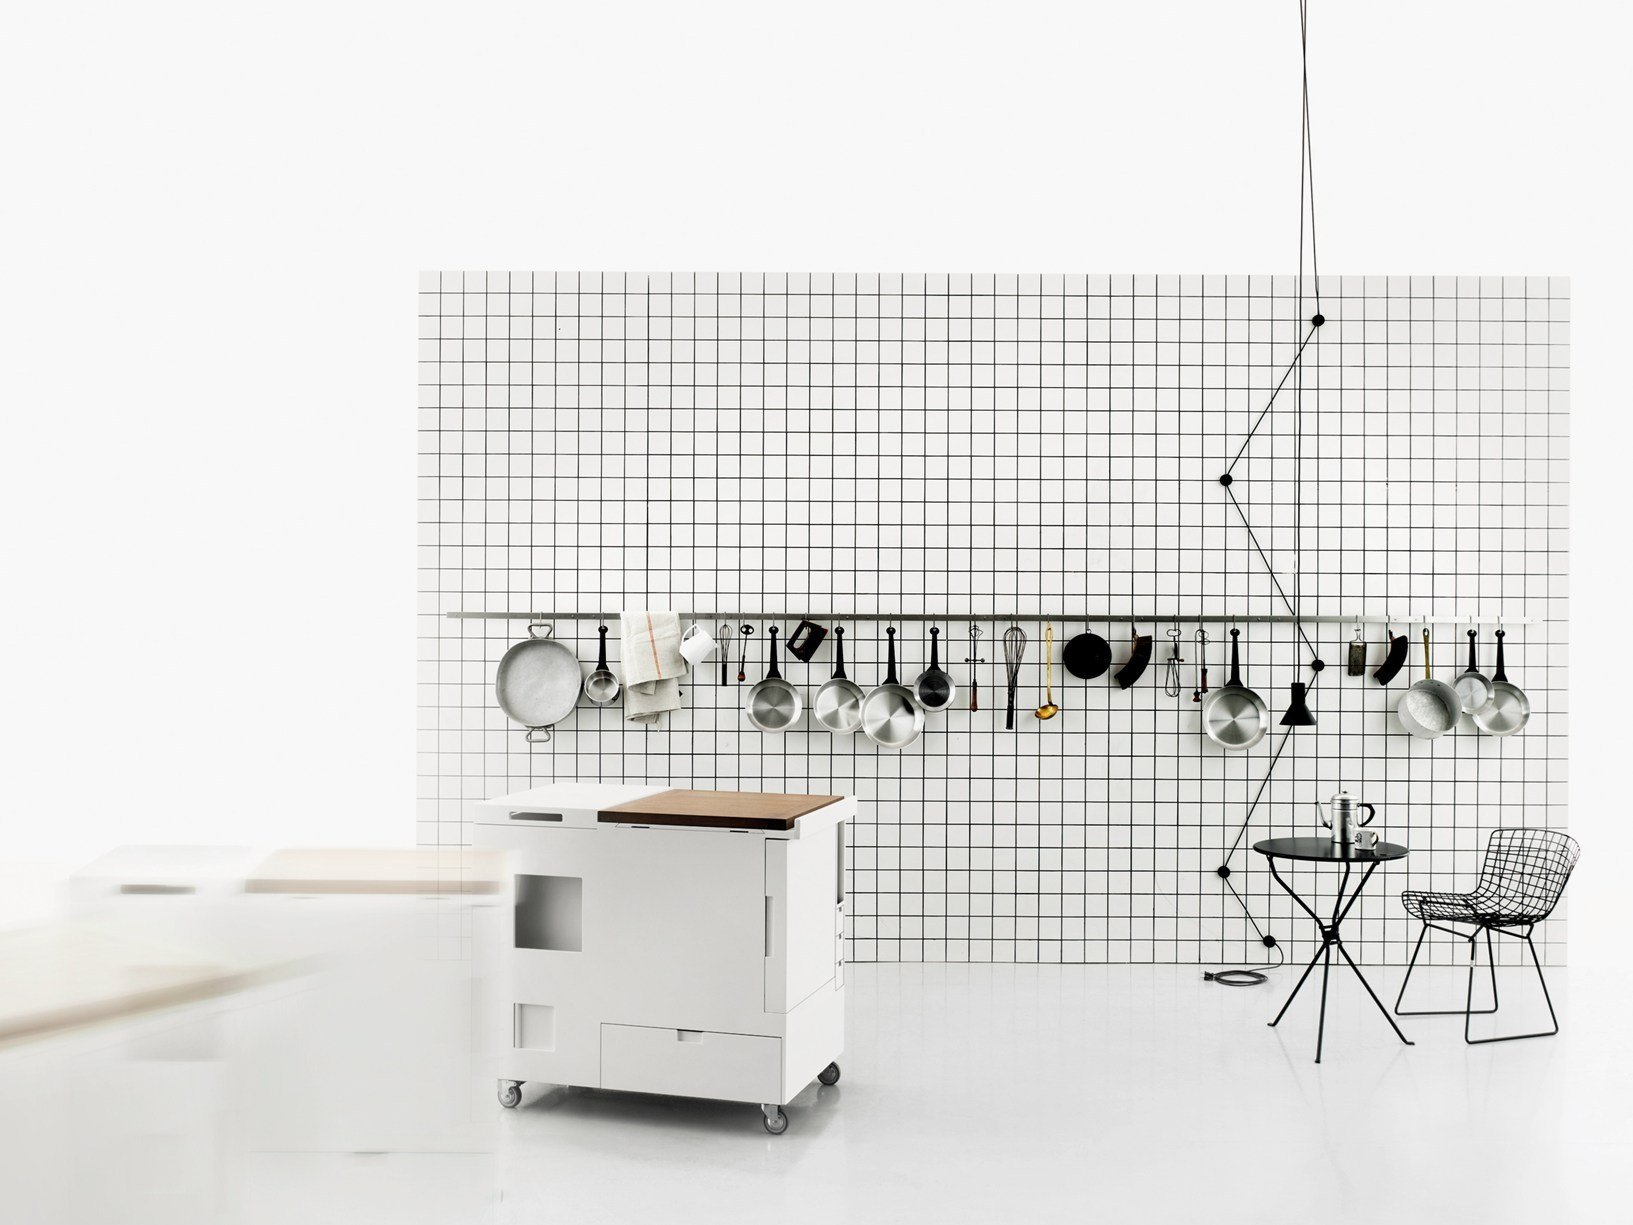 Minikitchen di joe colombo al 39 triennale design museum 39 for Le bon coin 95 ameublement